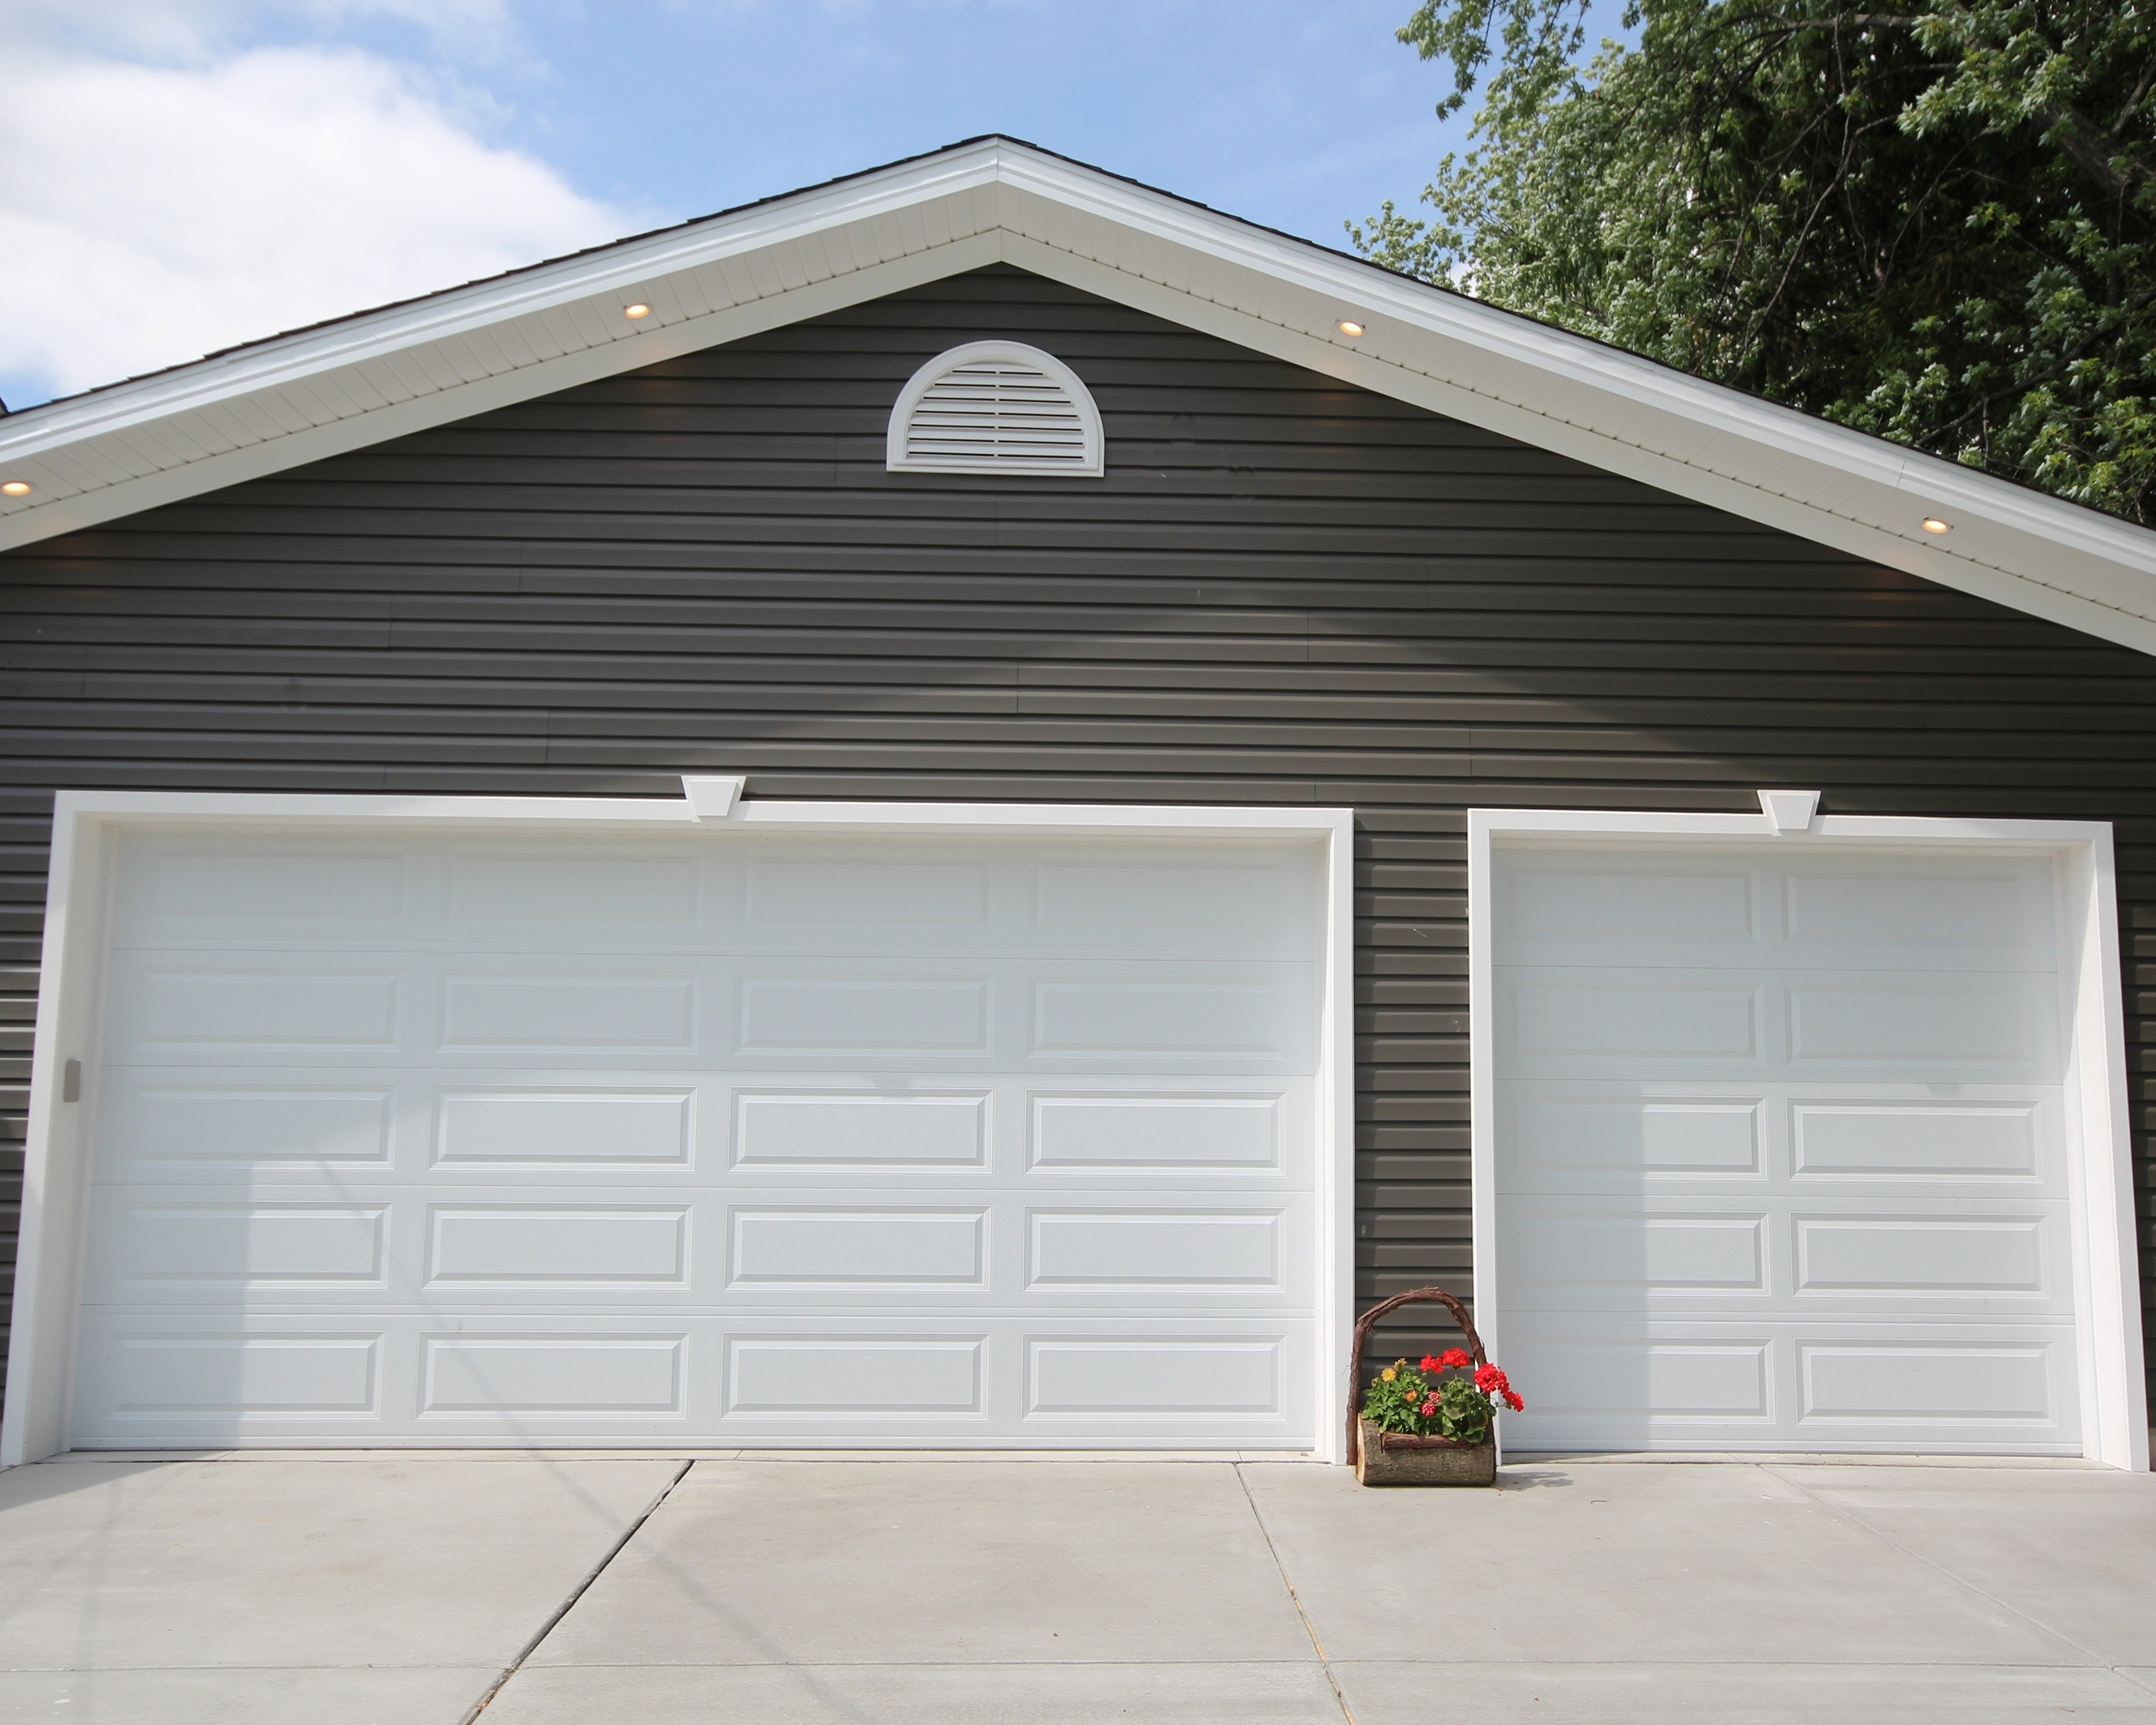 10x10 Metal Garage Door Madison Art Center Design